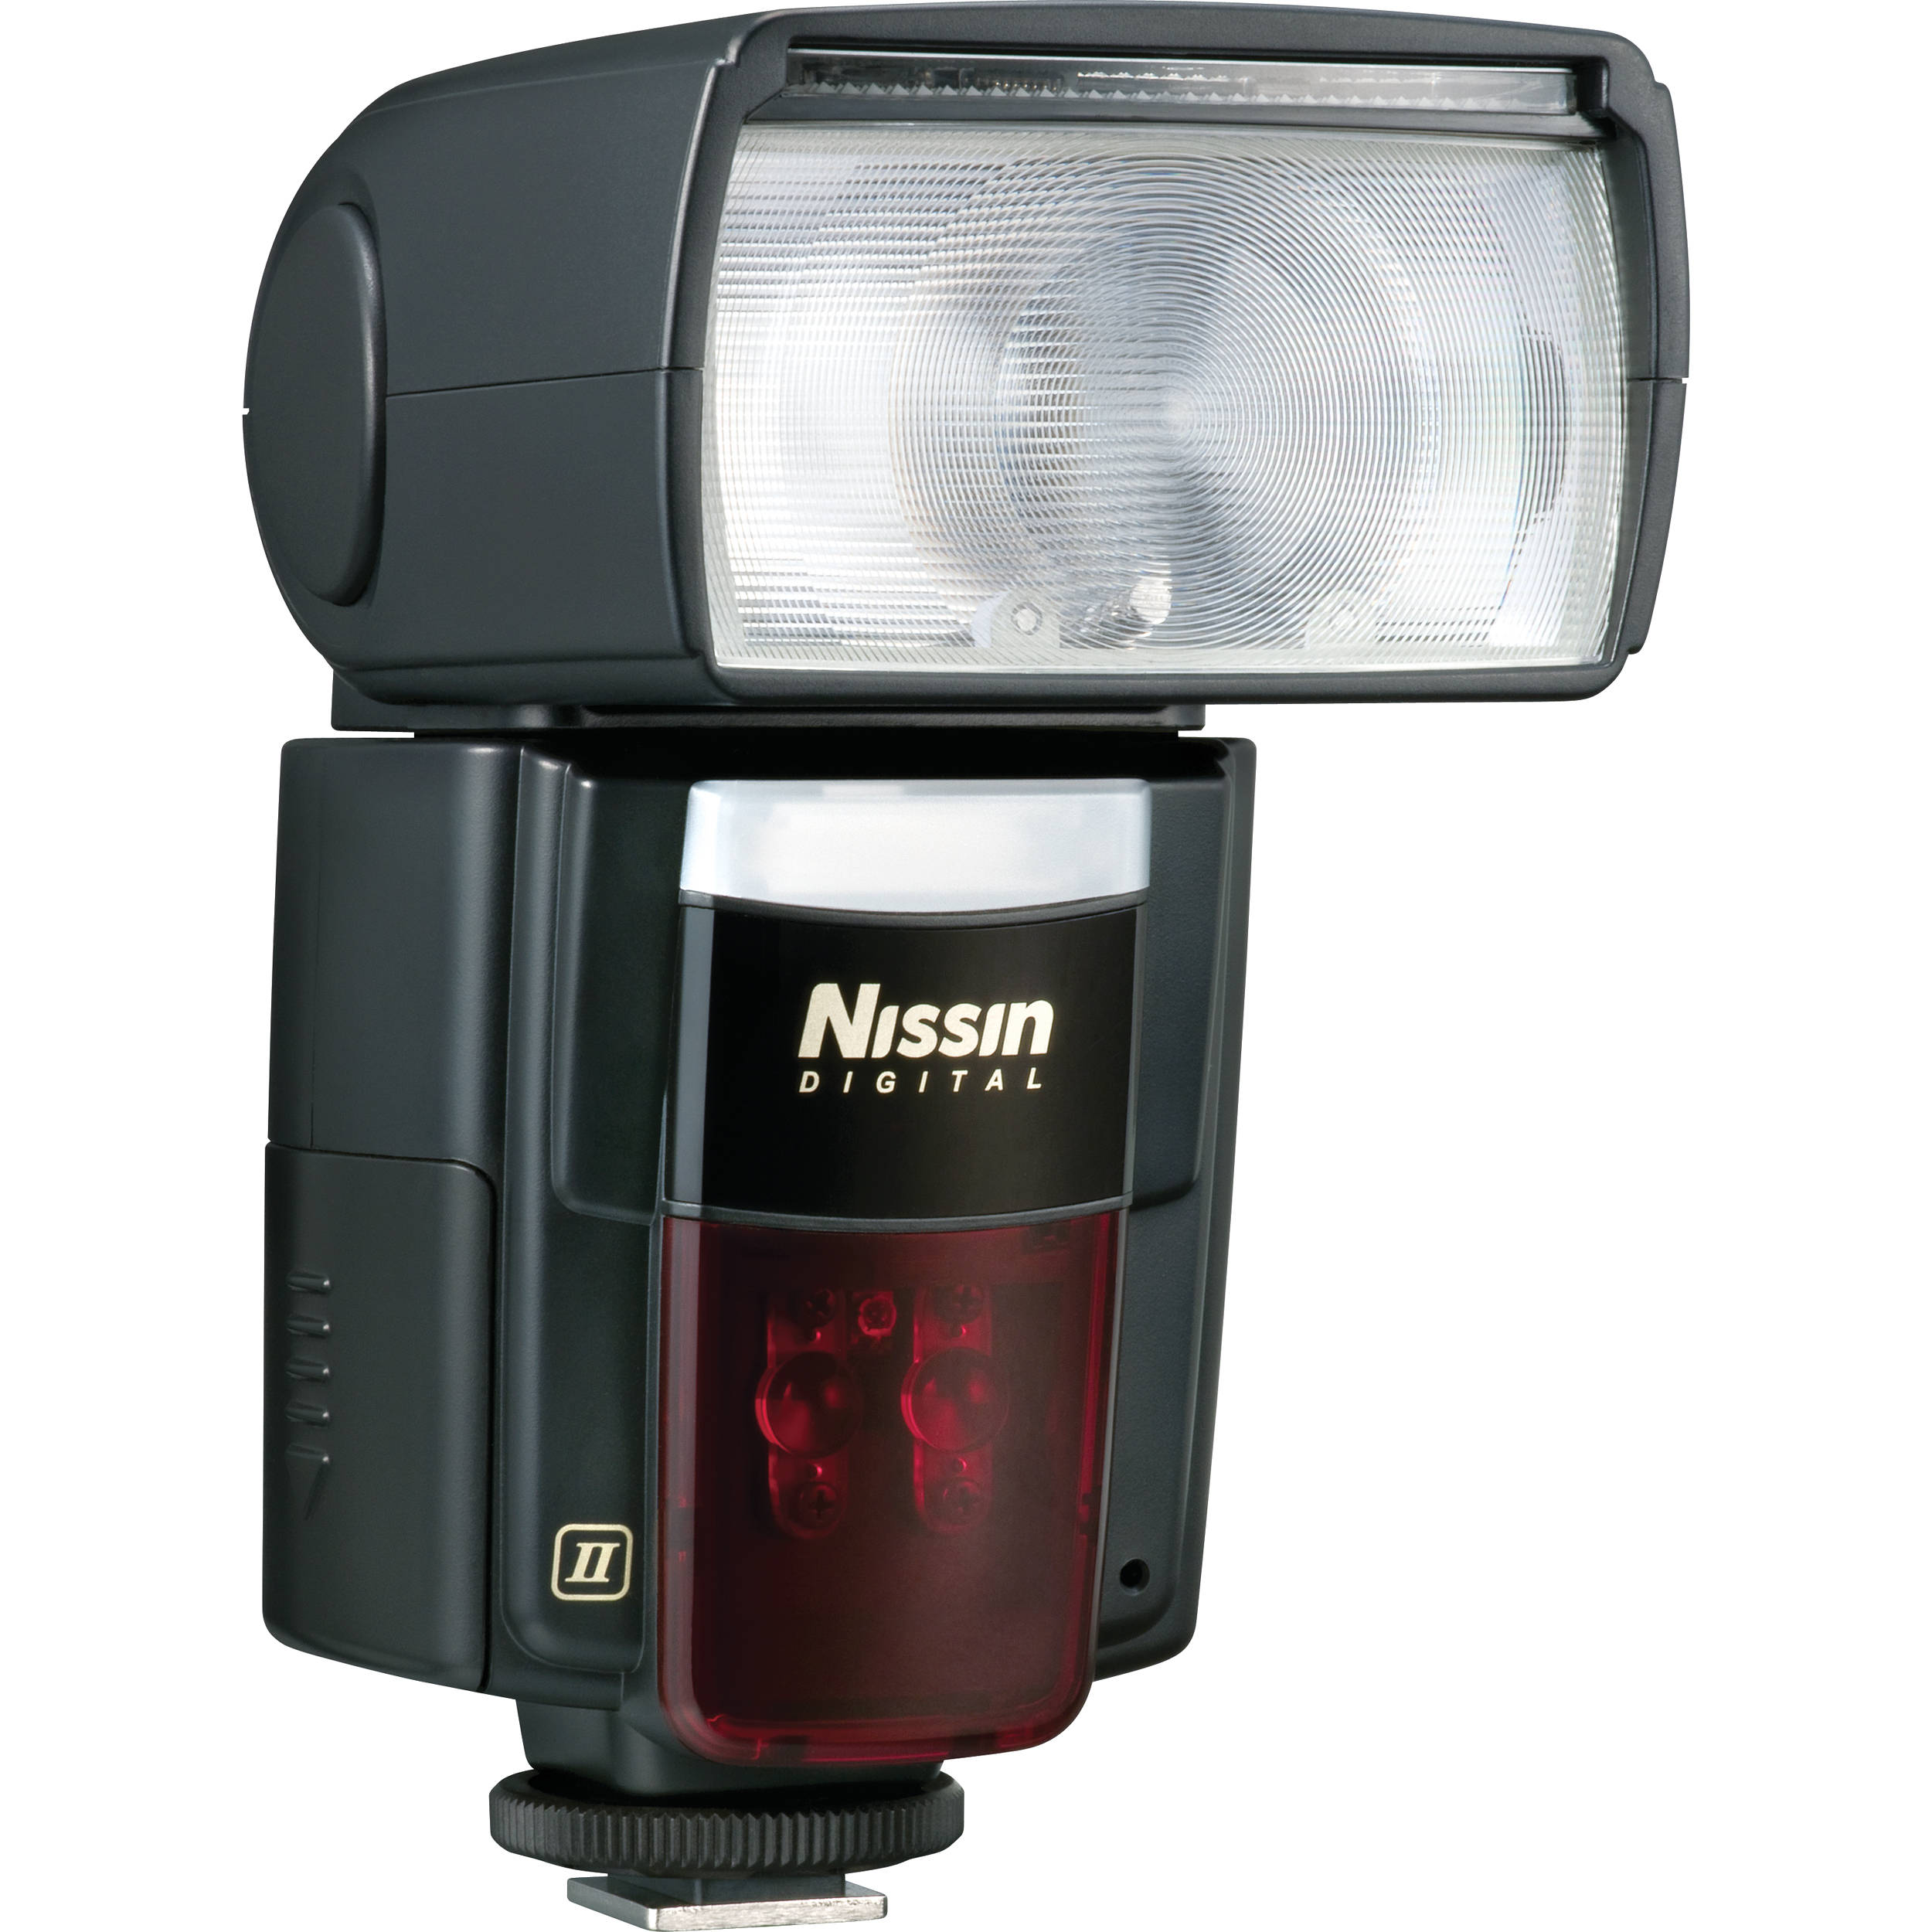 compare canon 600ex rt vs yongnuo yn600ex rt vs nissin di700a vs rh bhphotovideo com Nissin Di866 Firmware Update Nissin Flash Di866